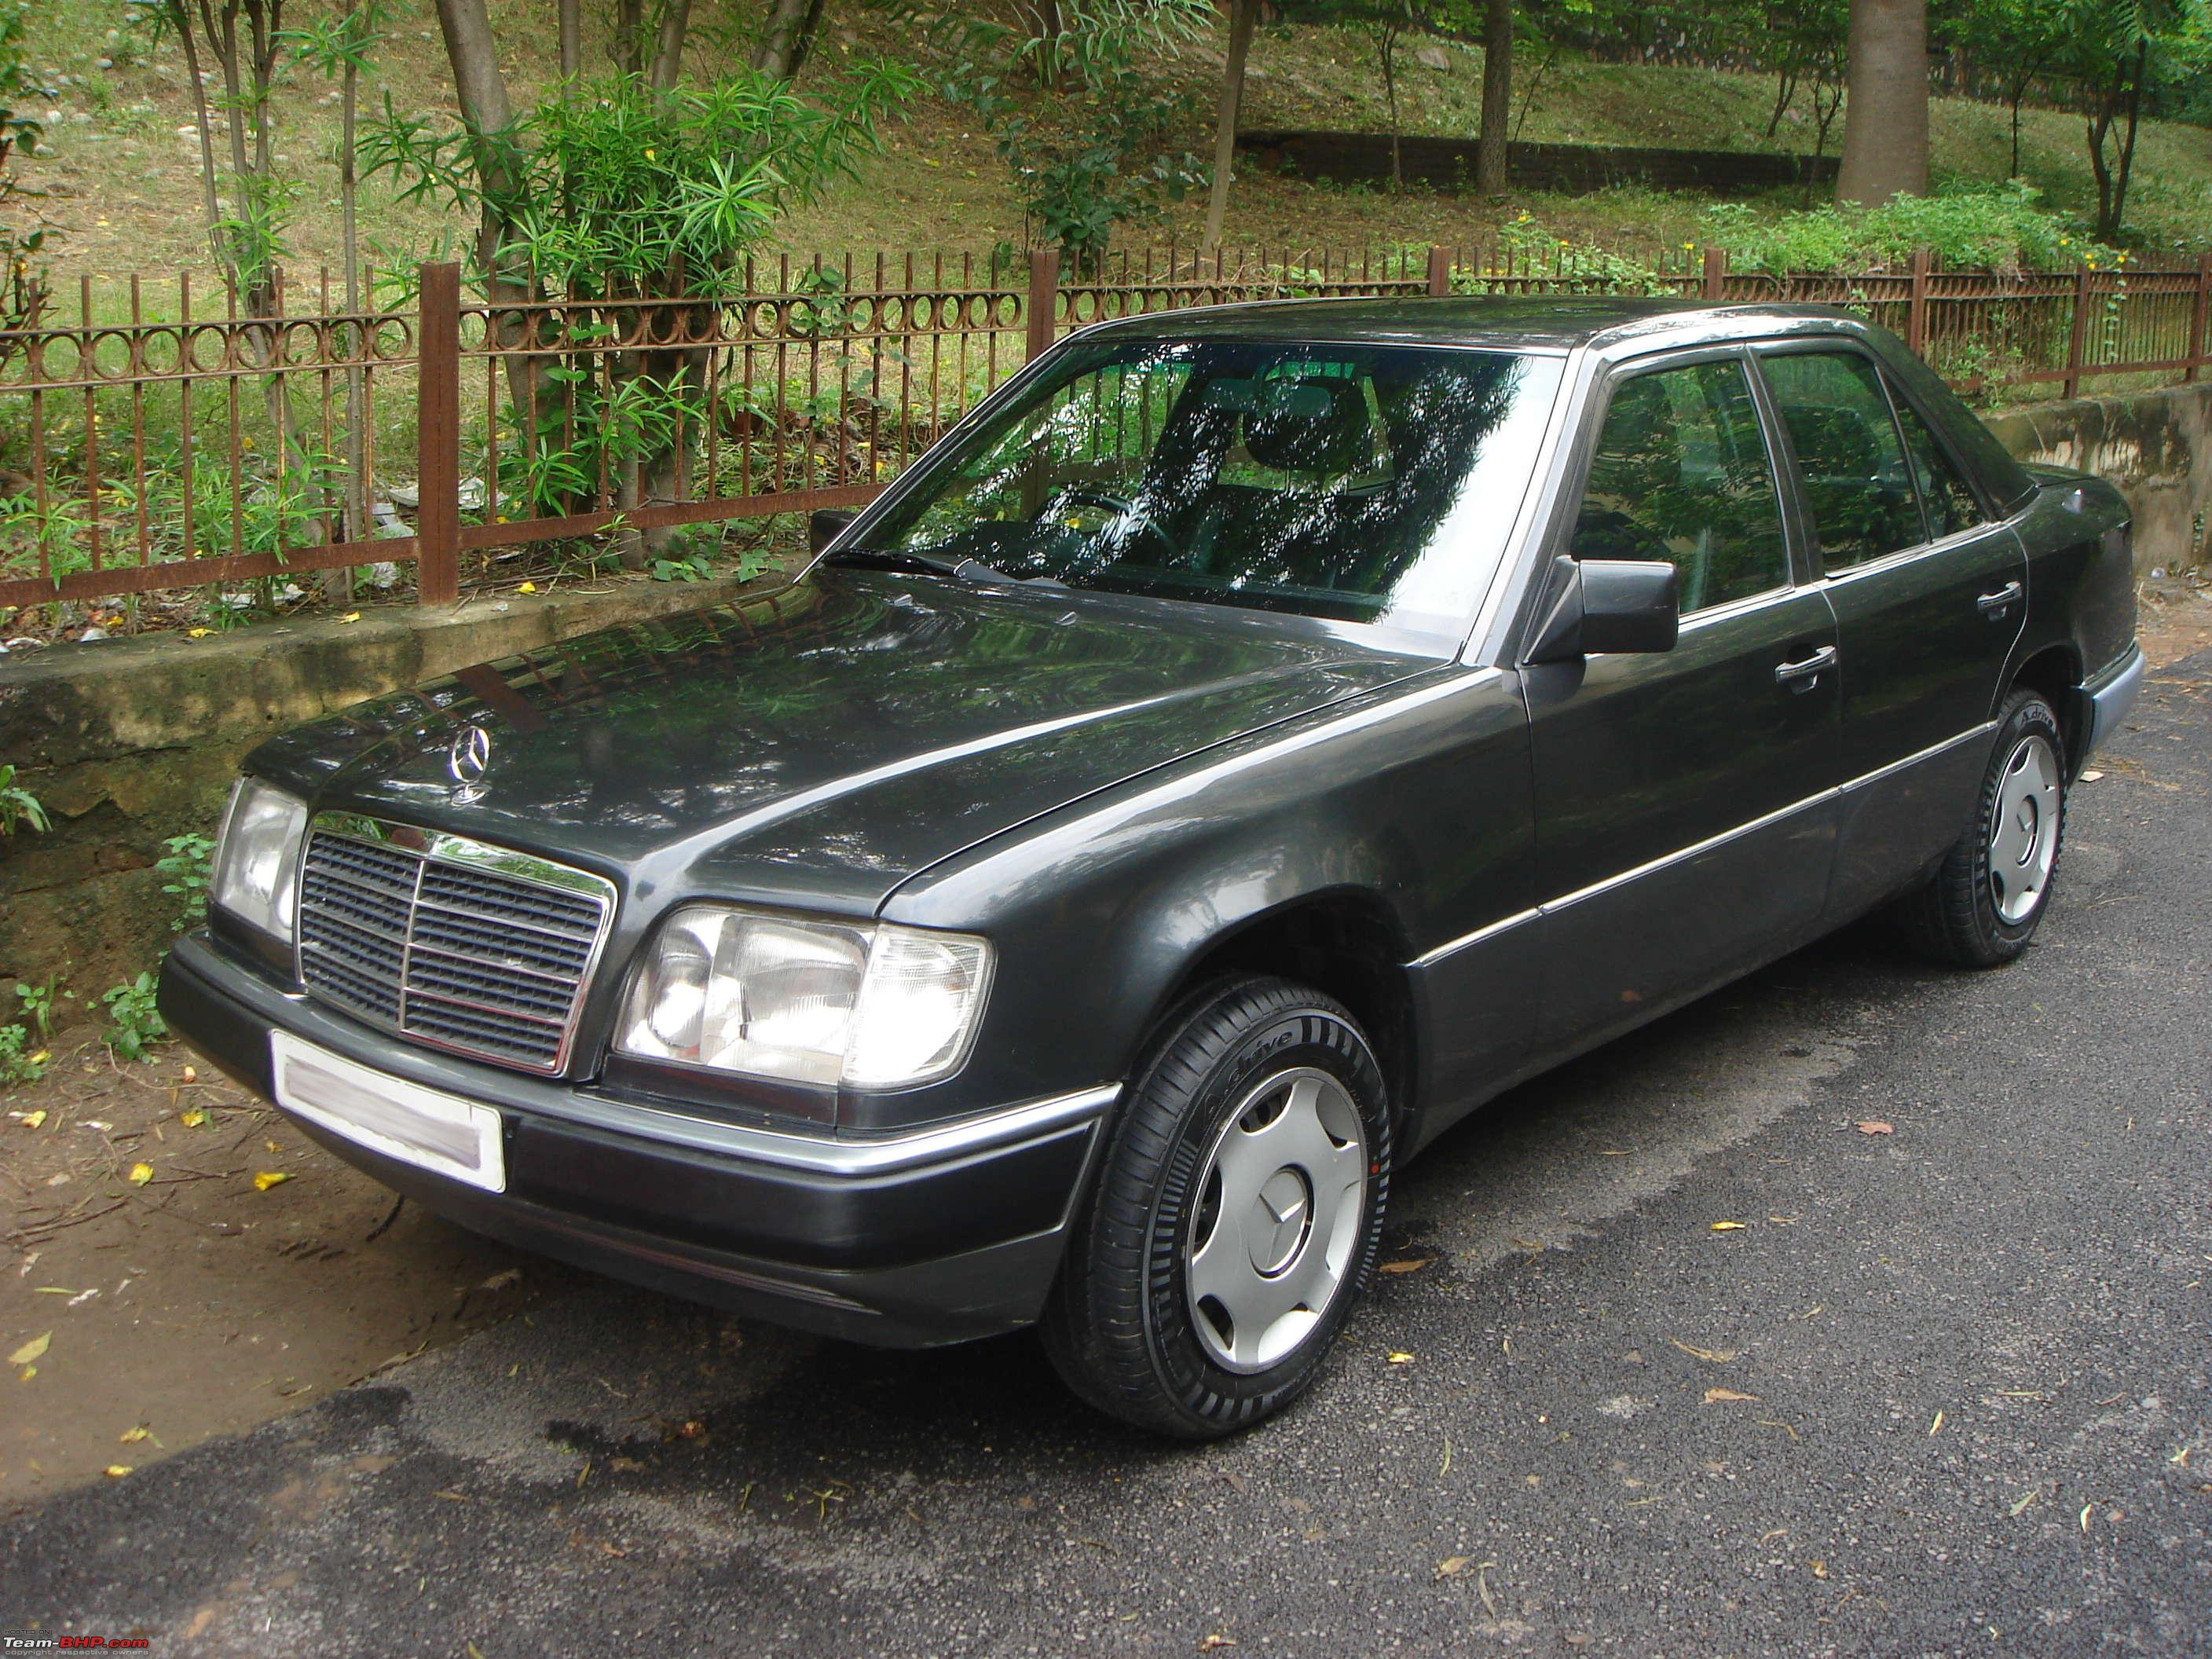 w124 mercedes e220 or e250d which would you buy page 7 team bhp. Black Bedroom Furniture Sets. Home Design Ideas